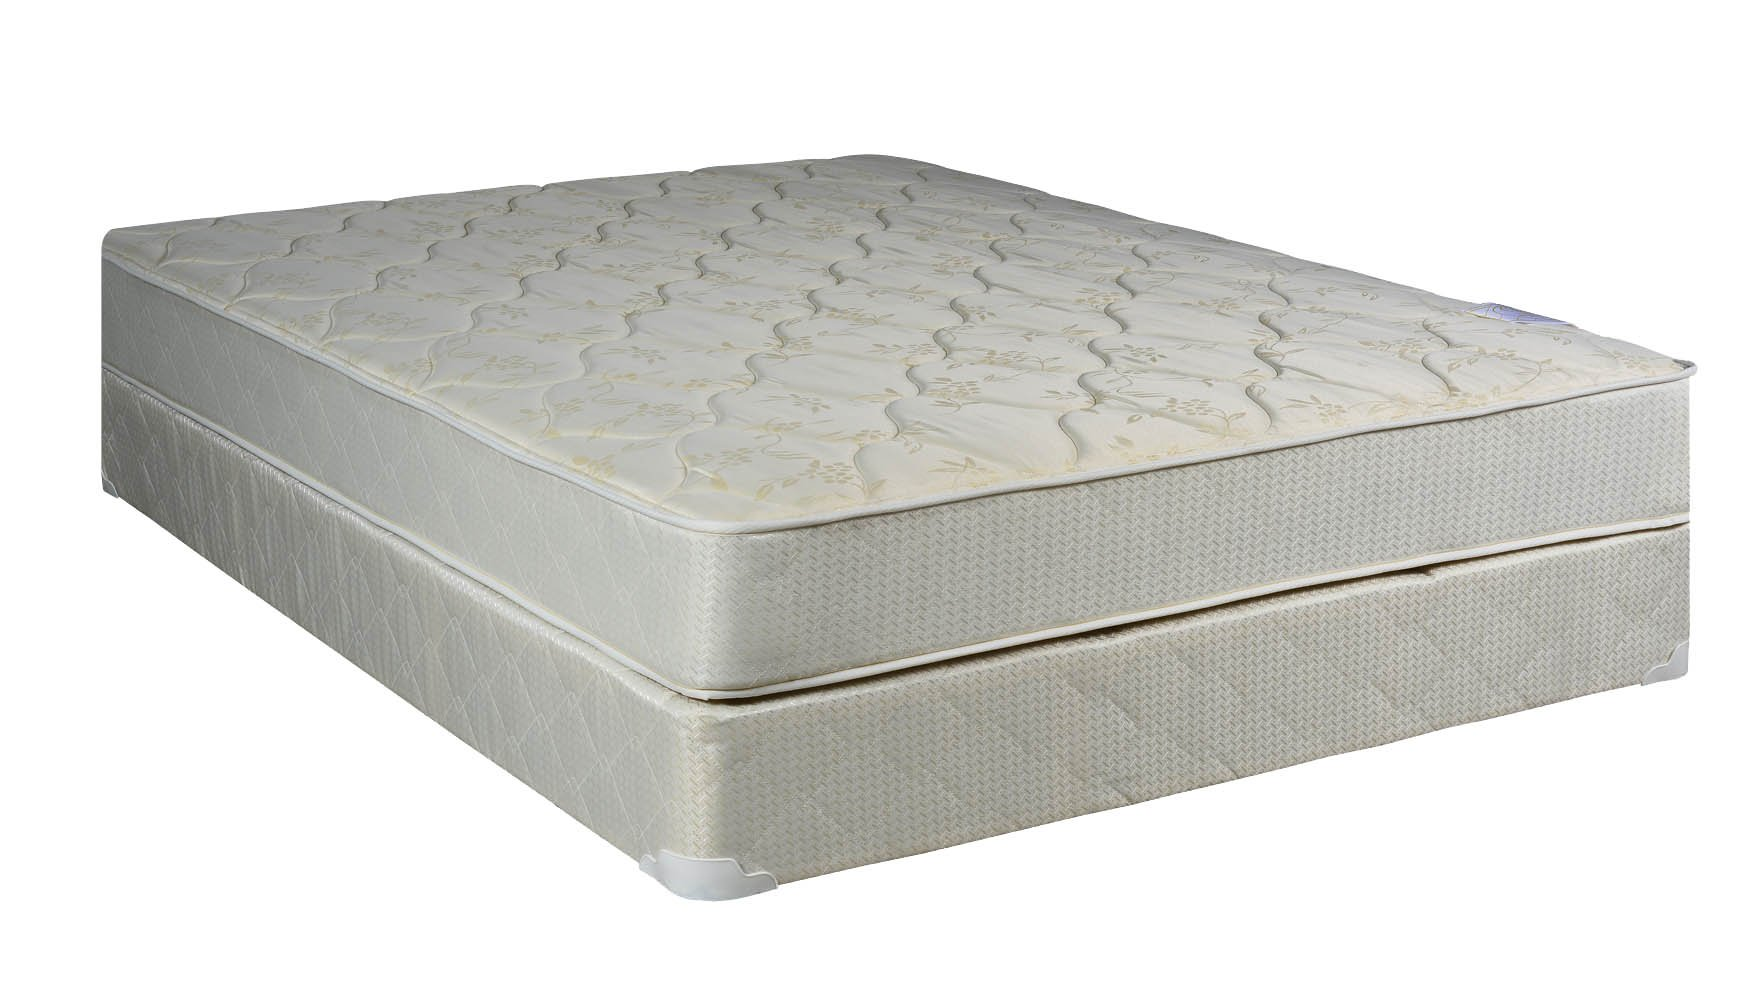 Spinal Solution, Twin Size Assembled Orthopedic Mattress With 4-inch Box Spring Sensation Collection by Spinal Solution